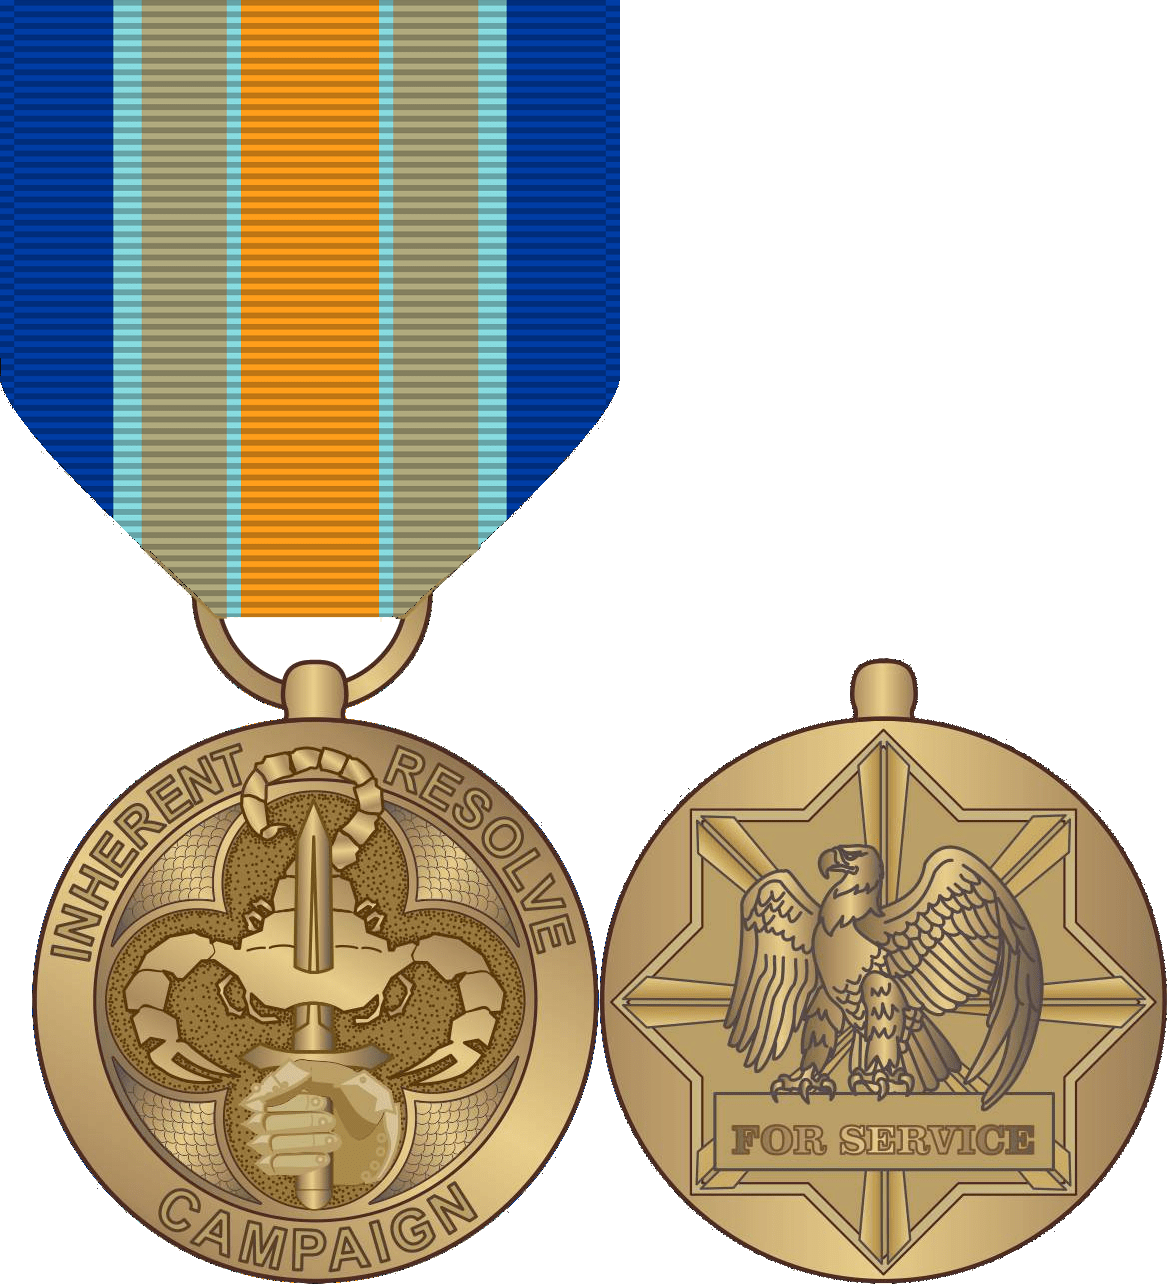 inherent resolve campaign medal wikipedia